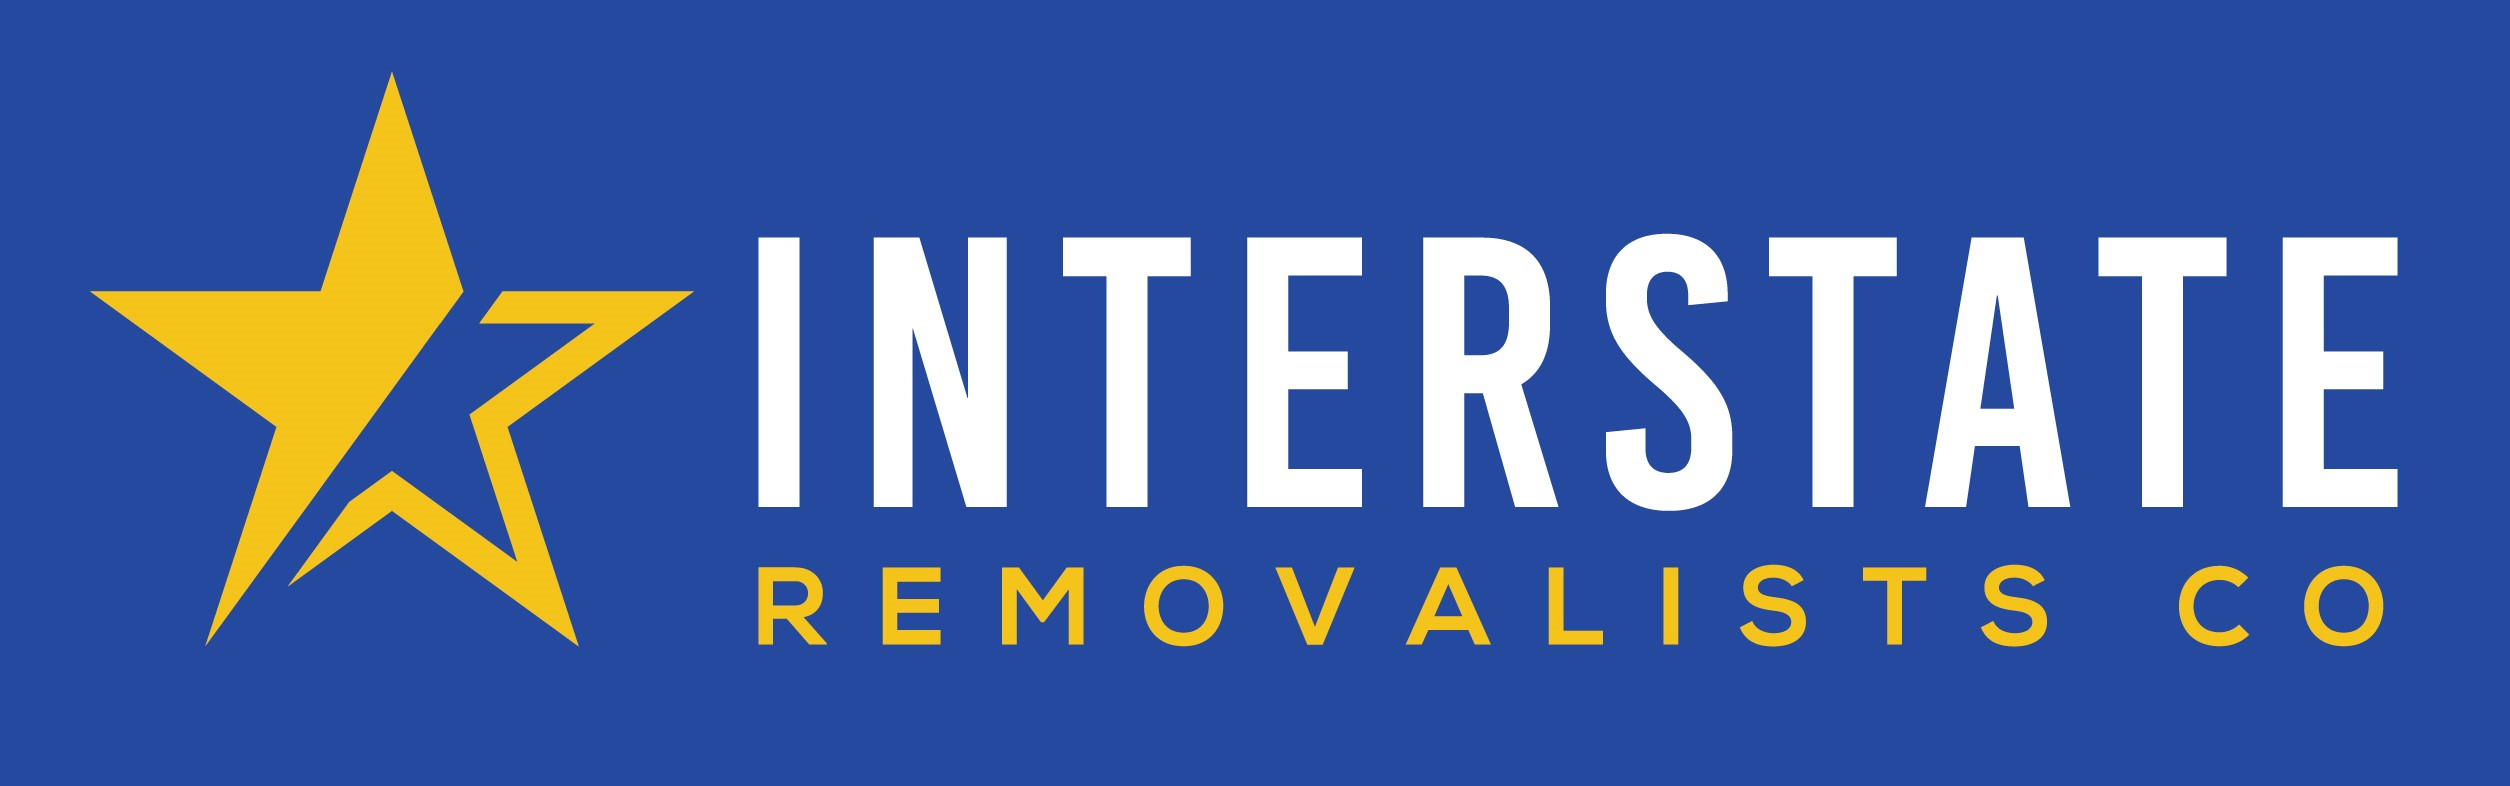 Interstate Removalists Co